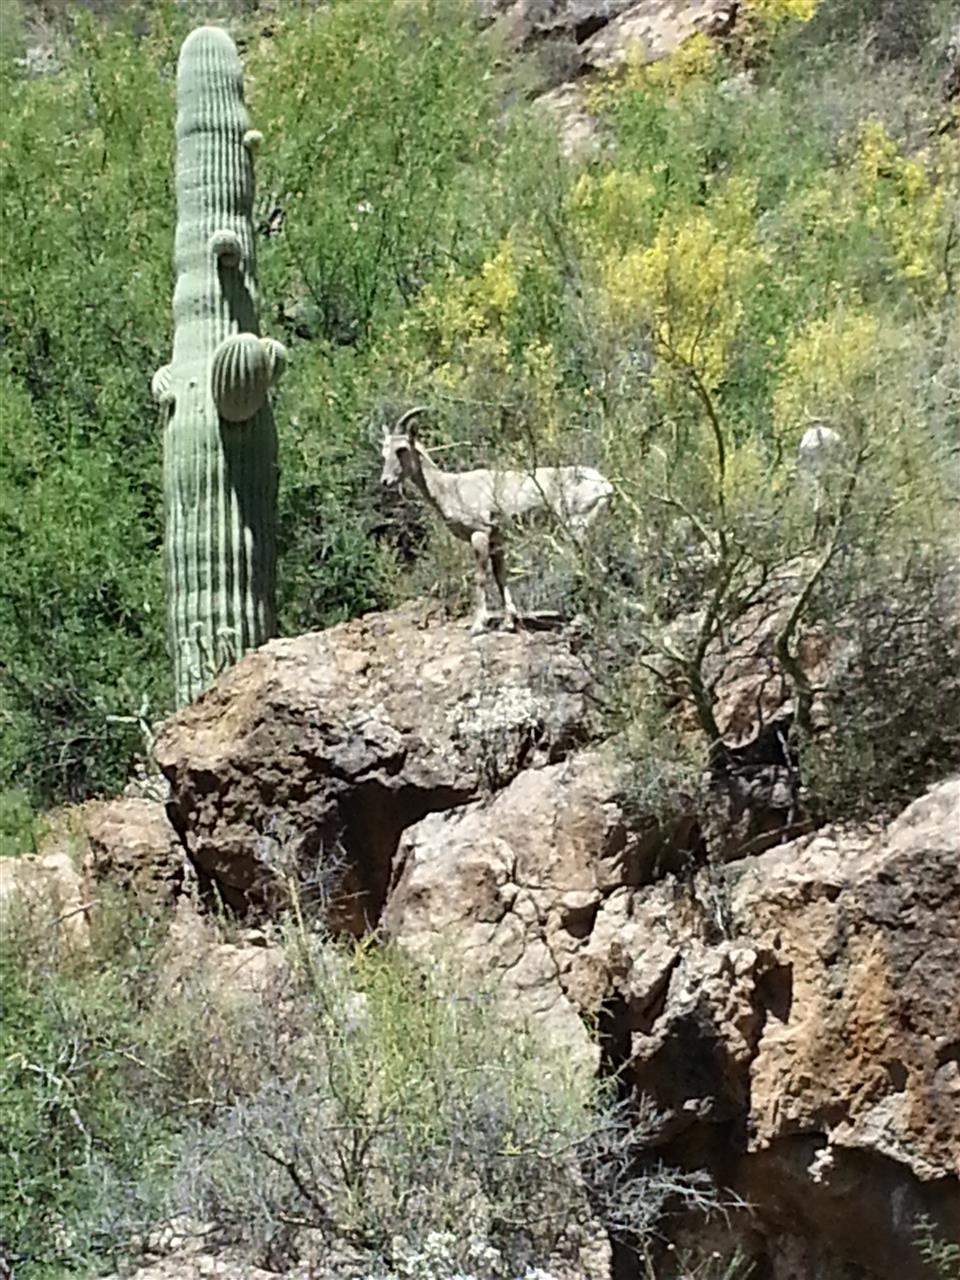 Wildlife at Saguaro Lake near Scottsdale, AZ